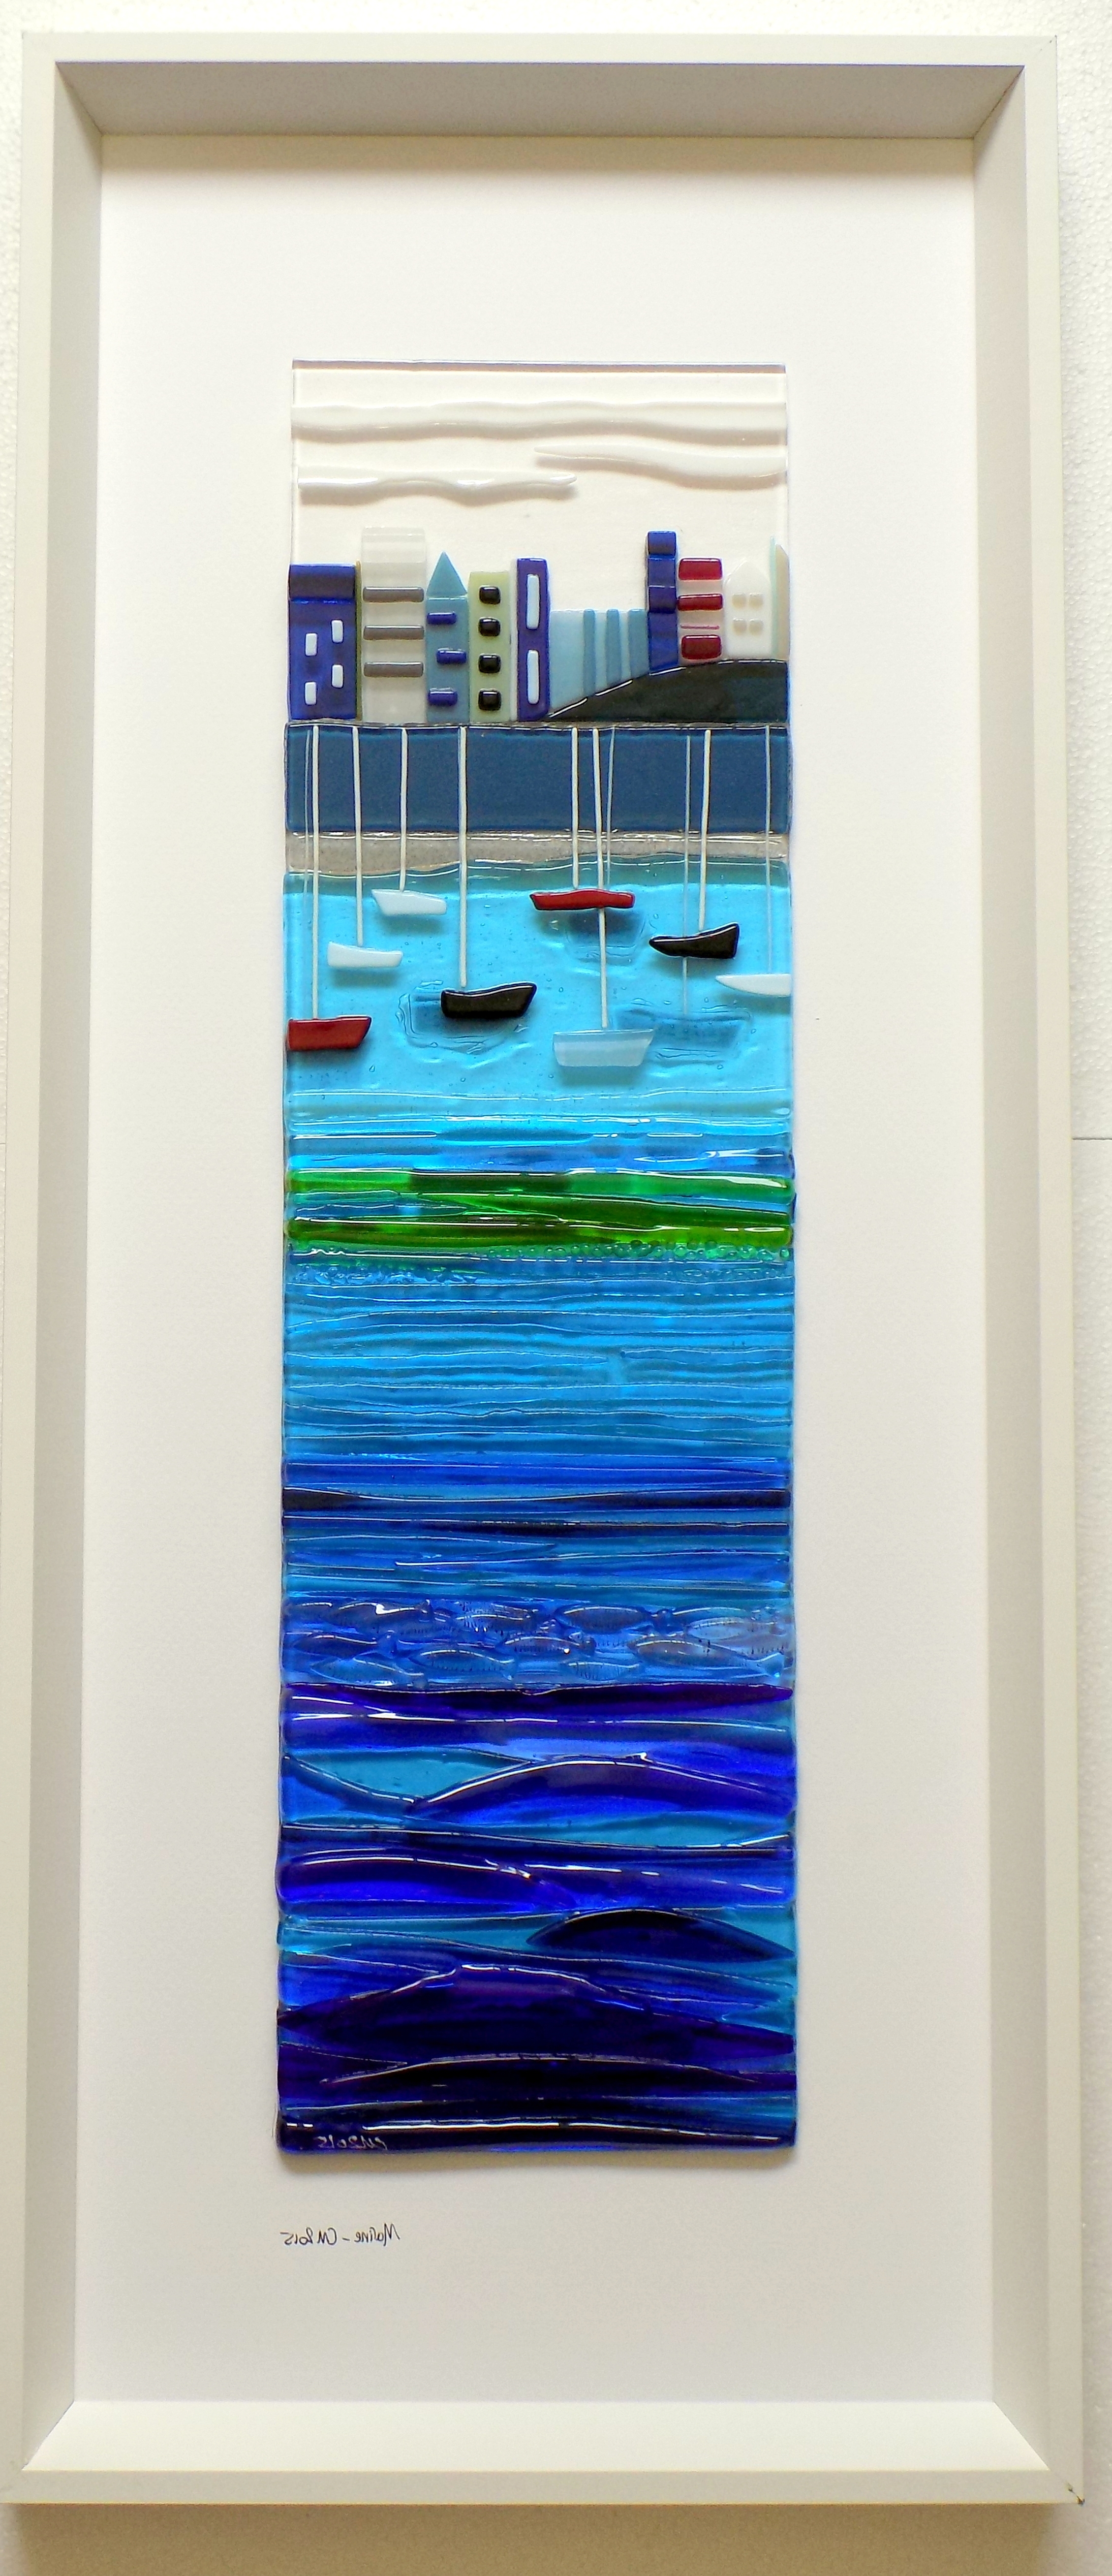 Famous Framed Fused Glass Wall Art With Large Framed Panels – Inlight – Contemporary Fused Glass (View 3 of 15)